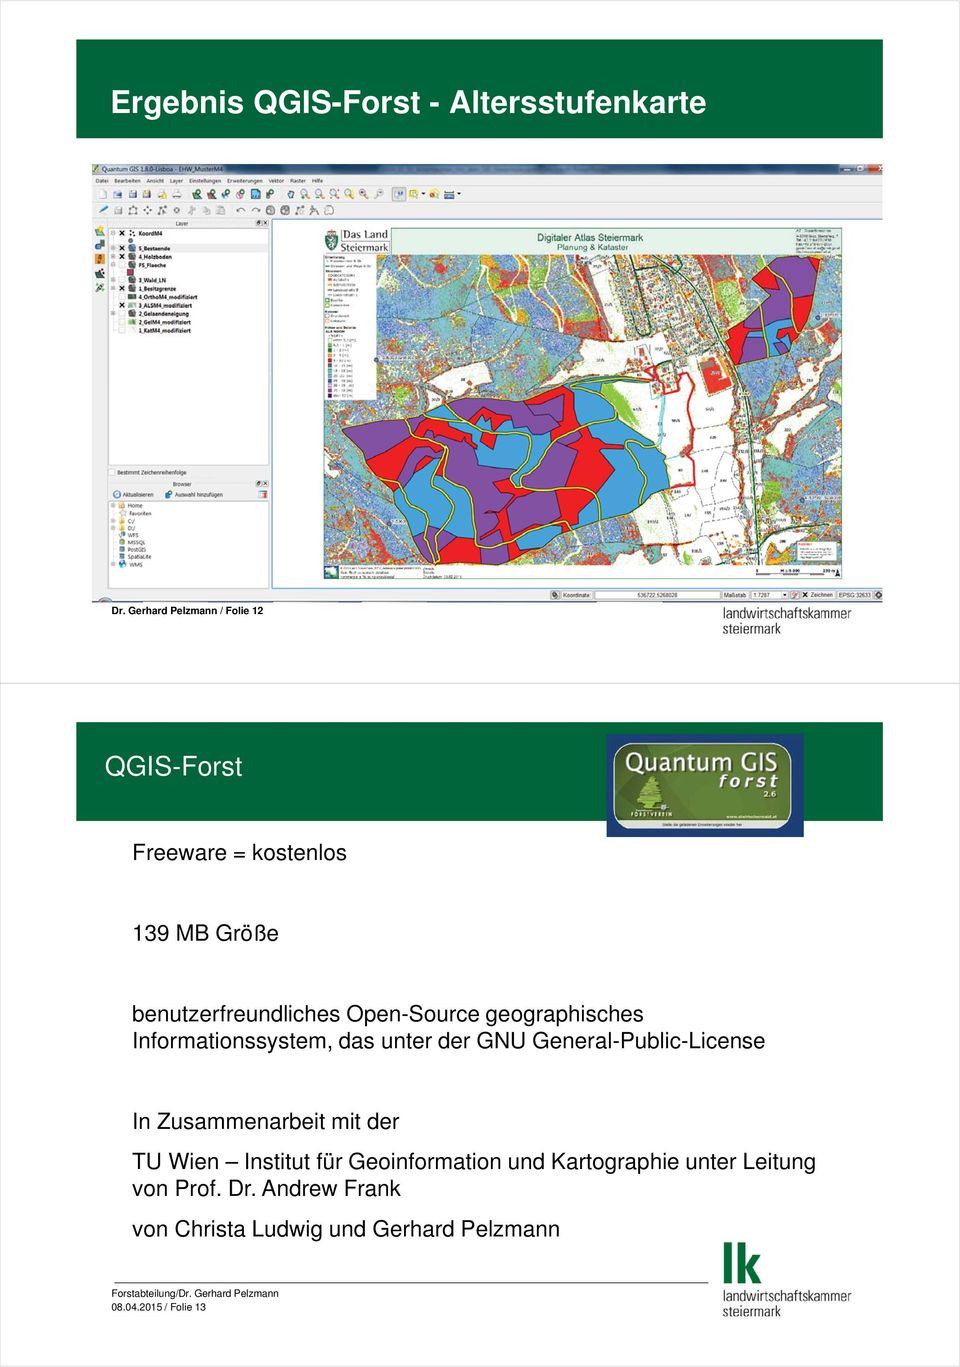 Open-Source geographisches Informationssystem, das unter der GNU General-Public-License In